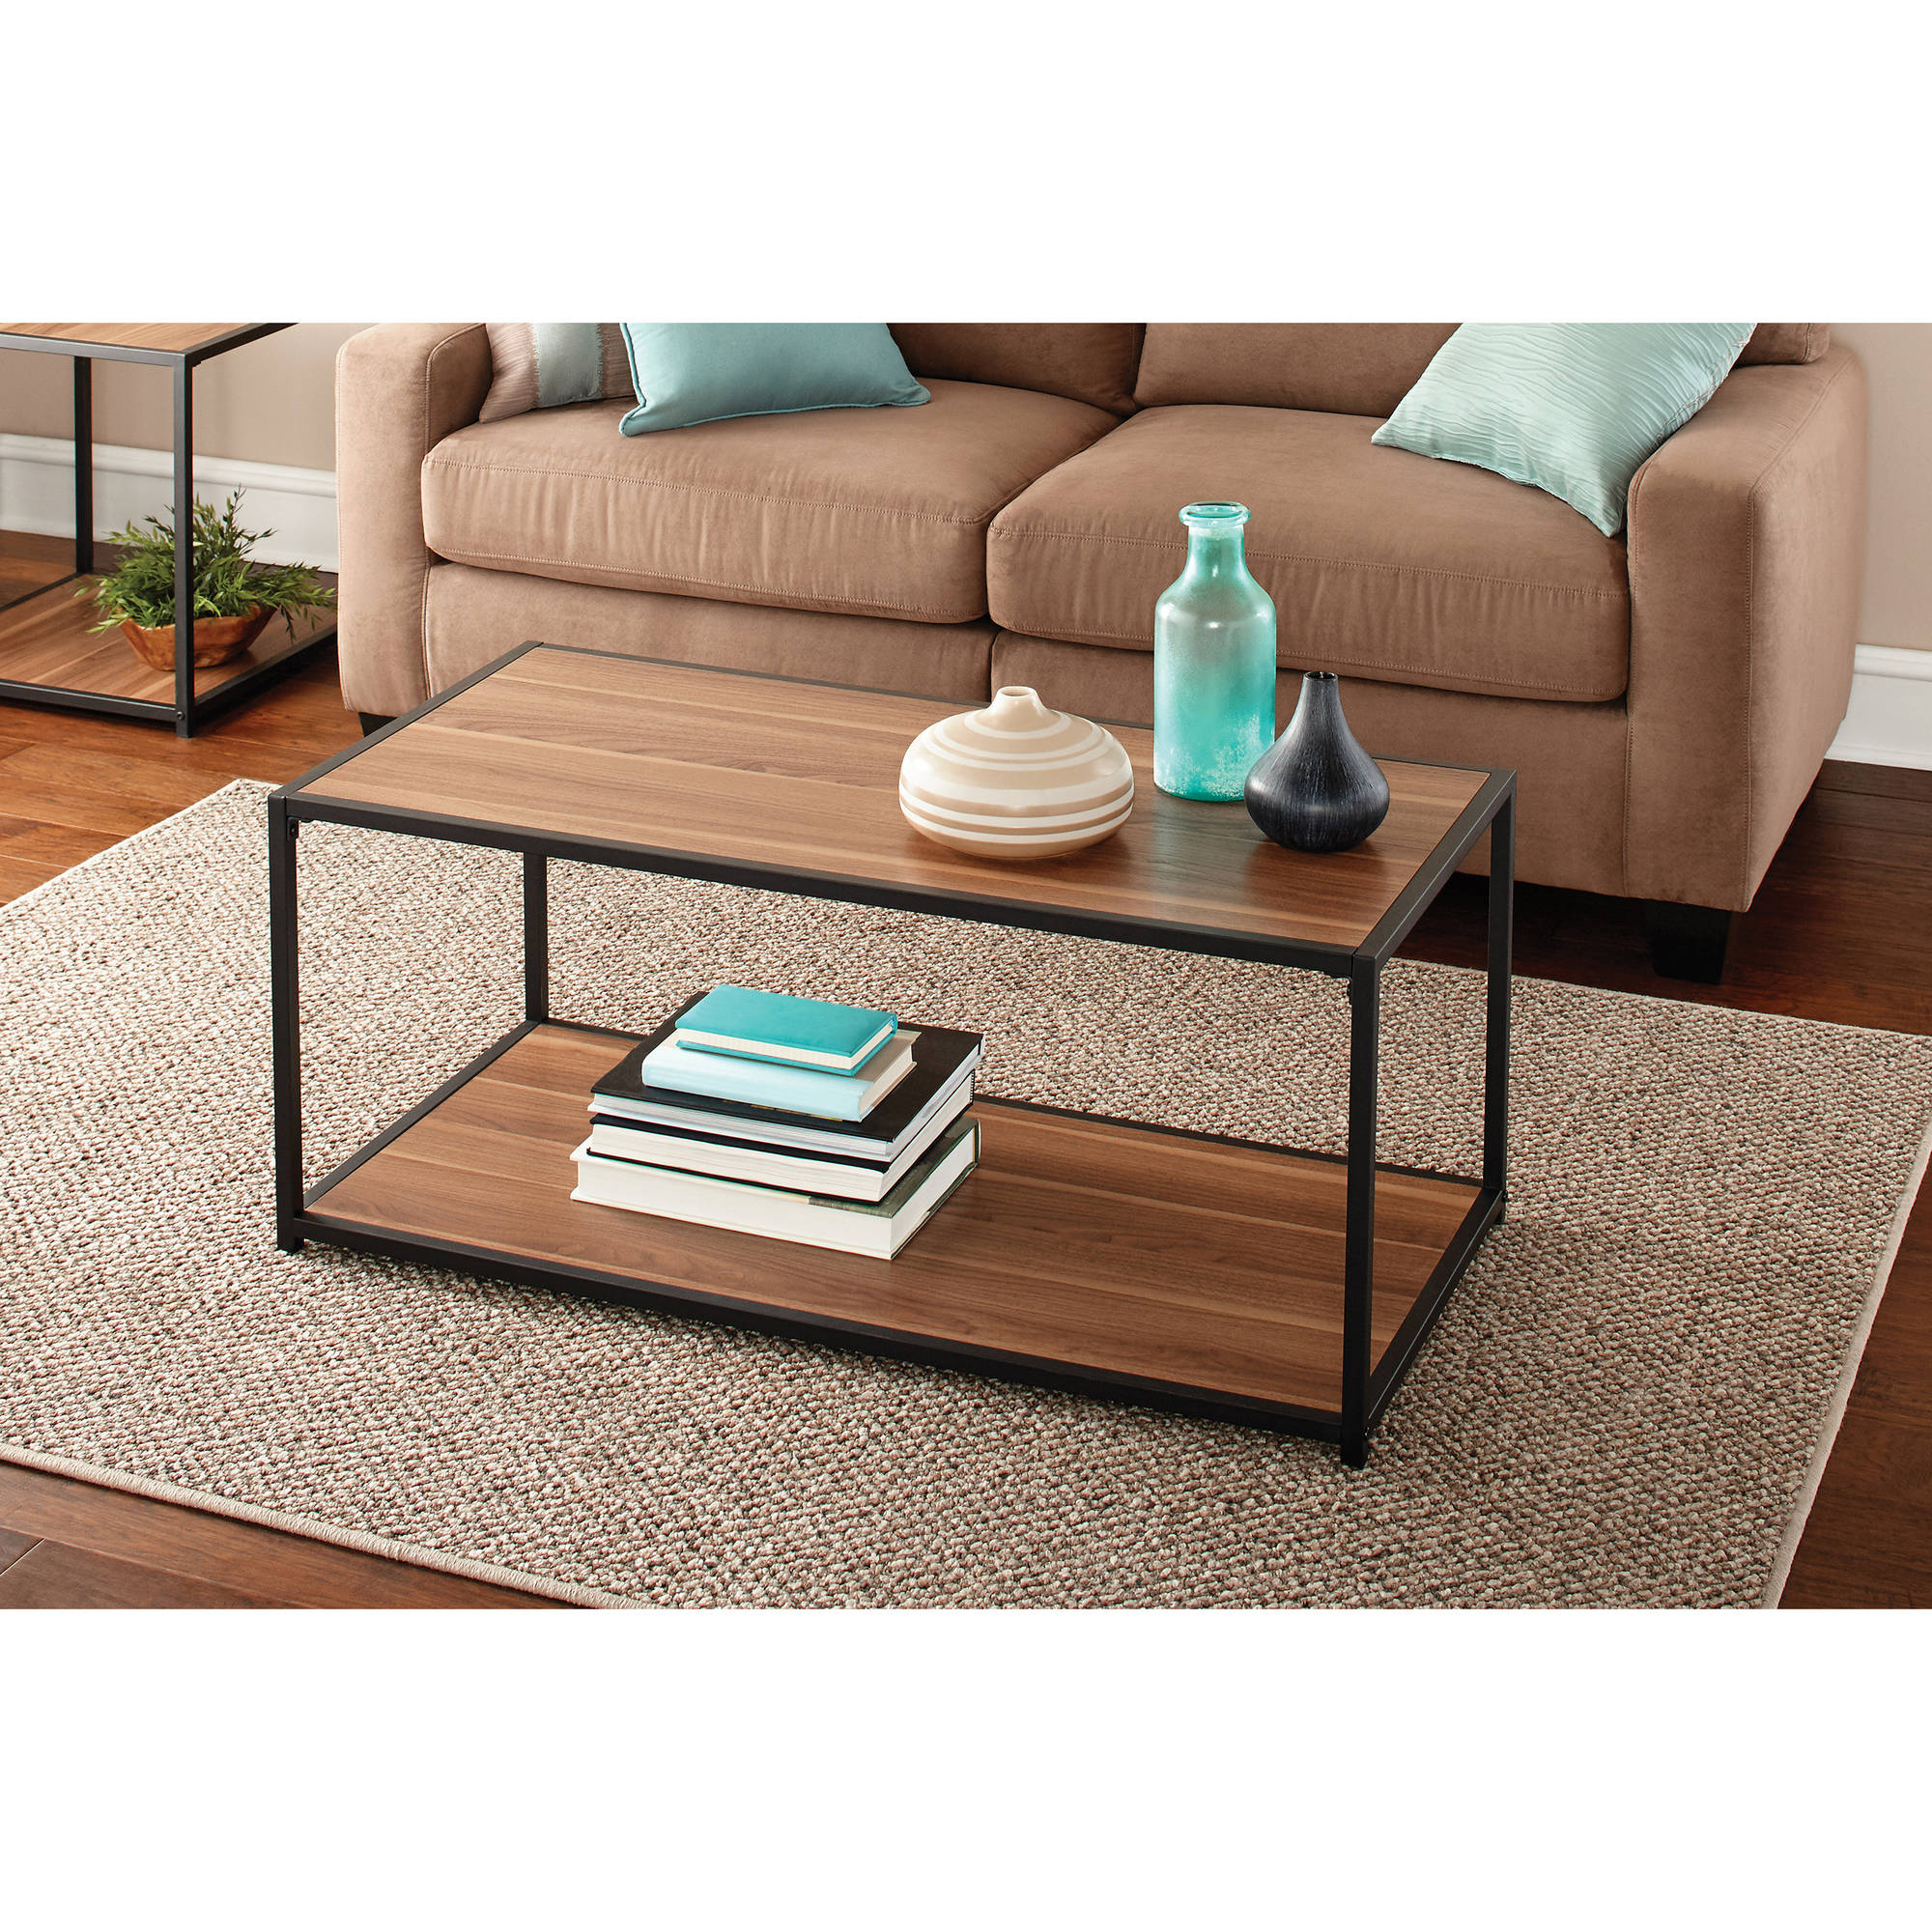 Living Room Walmart Living Room Sets With Elegant Furniture Design in Living Room Sets Walmart